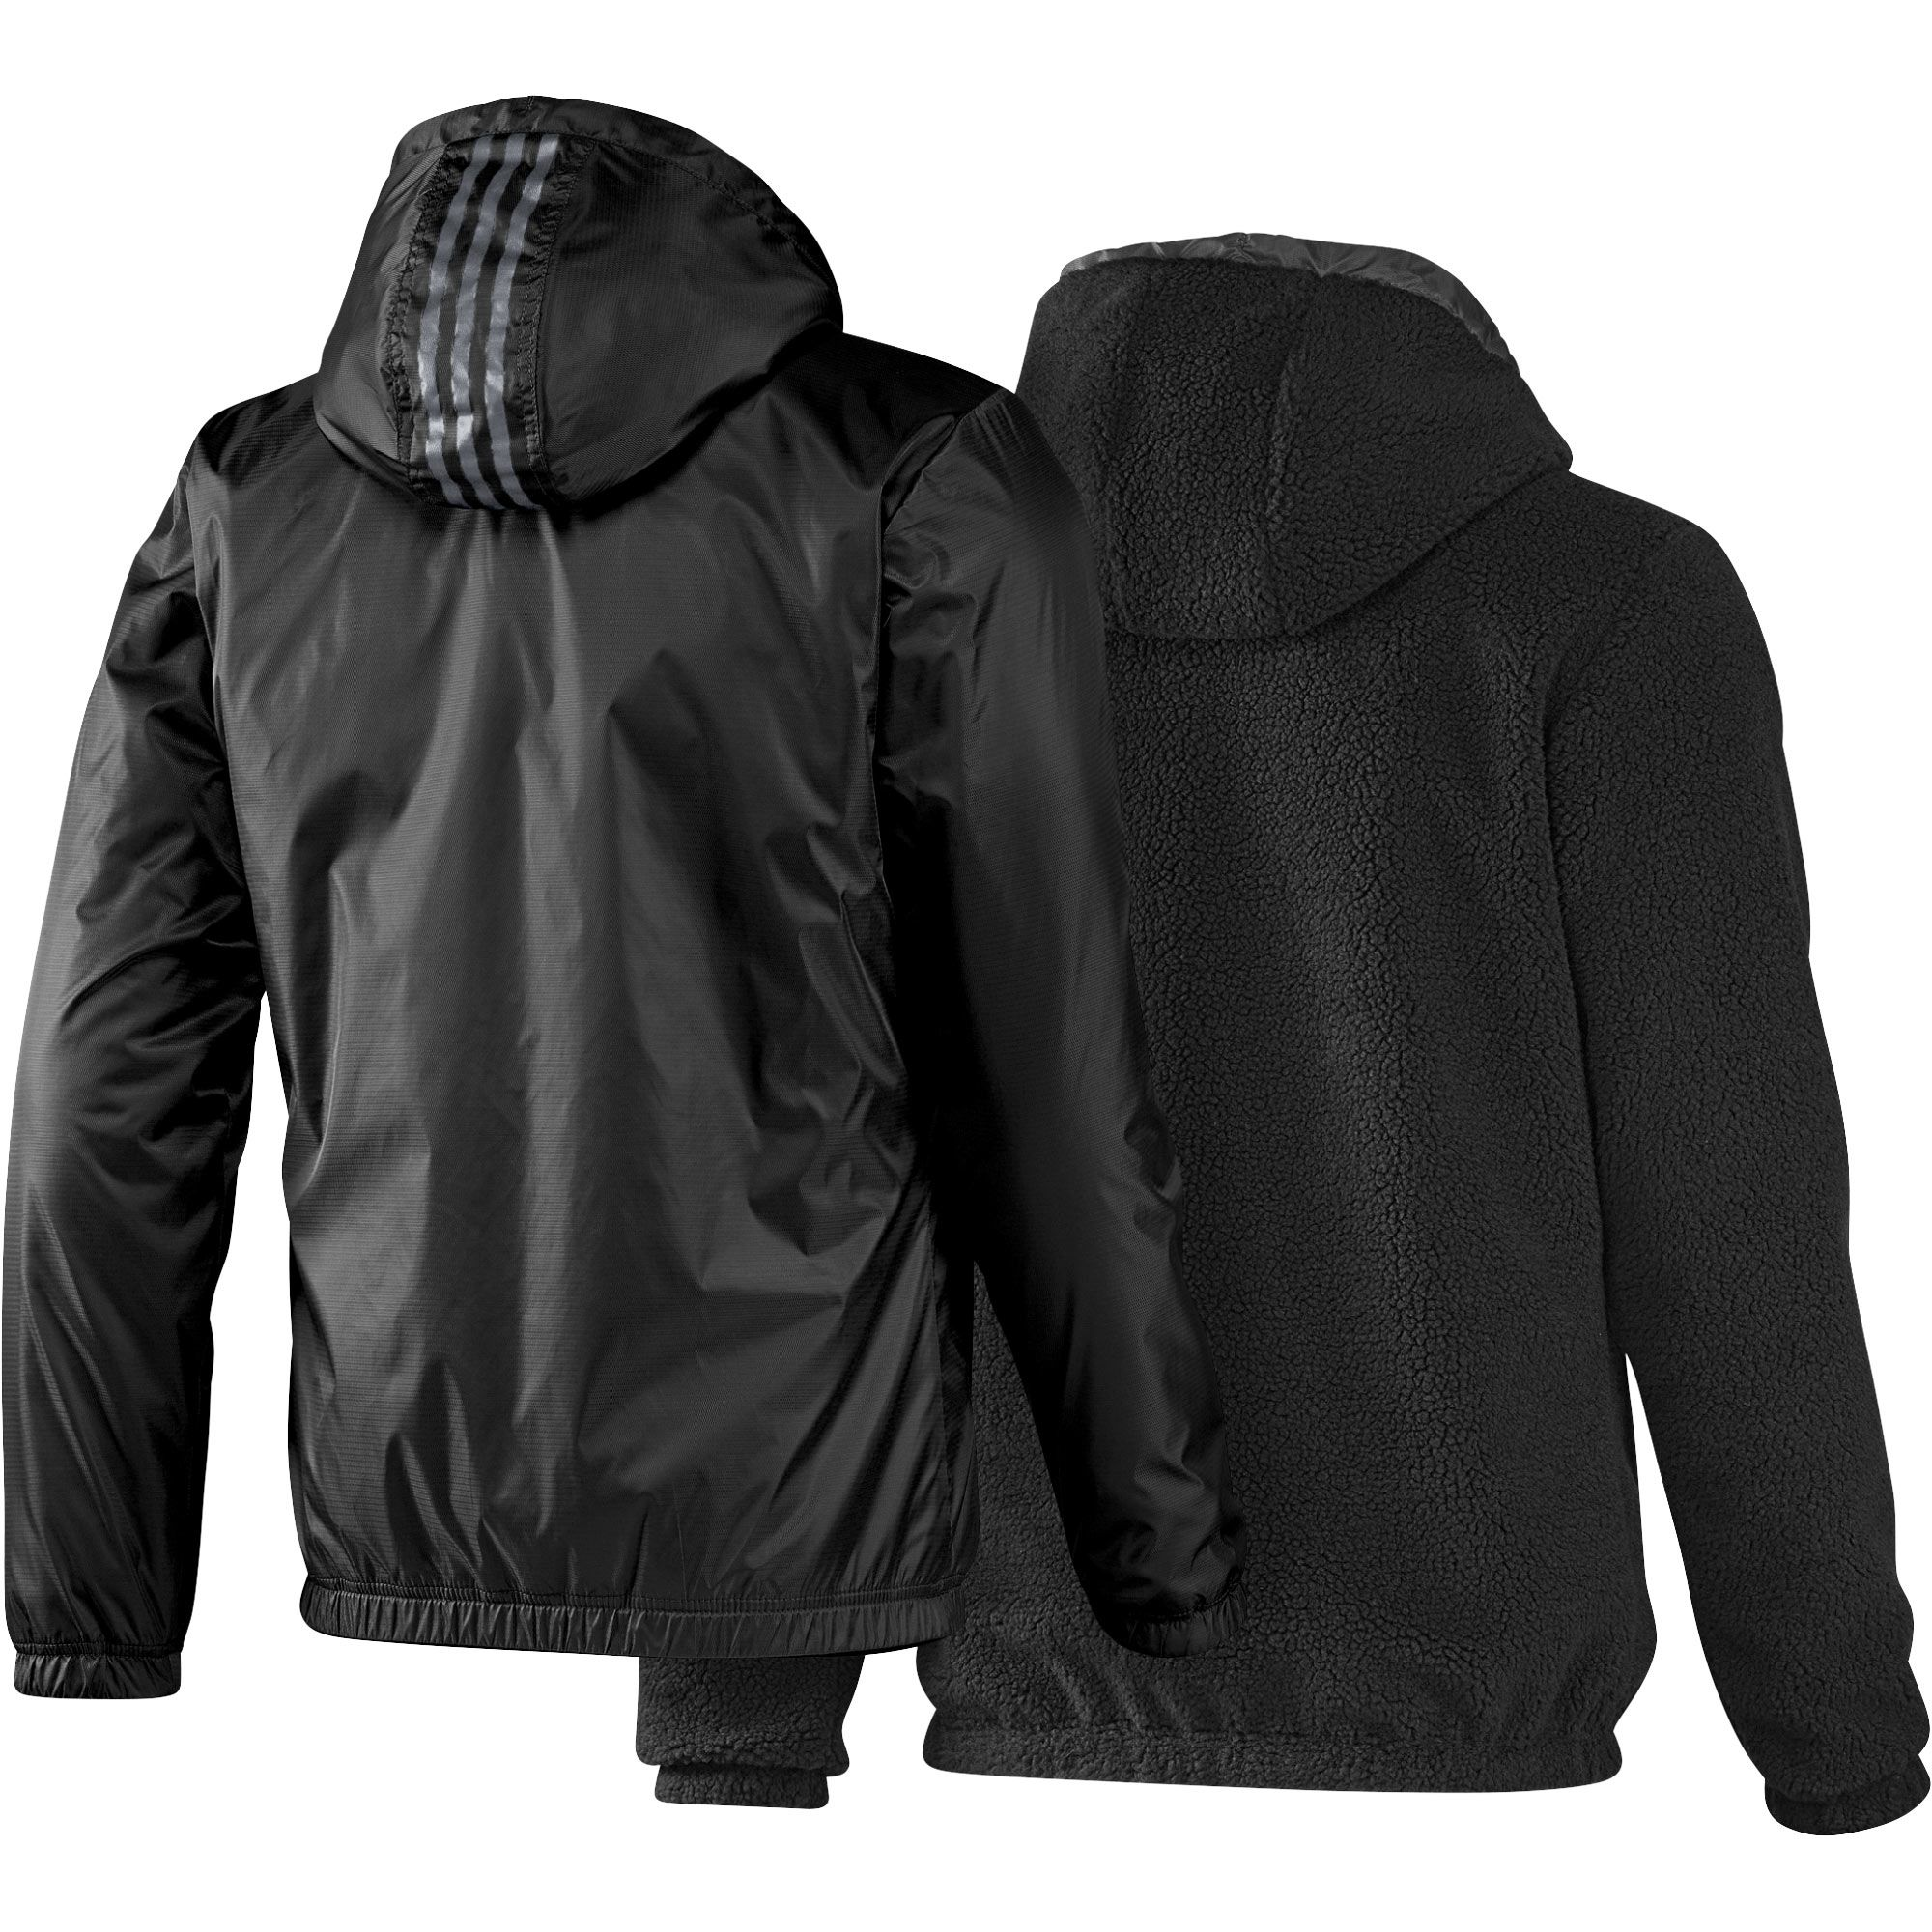 adidas neo reversible sherpa herren windbreaker wende jacke schwarz. Black Bedroom Furniture Sets. Home Design Ideas